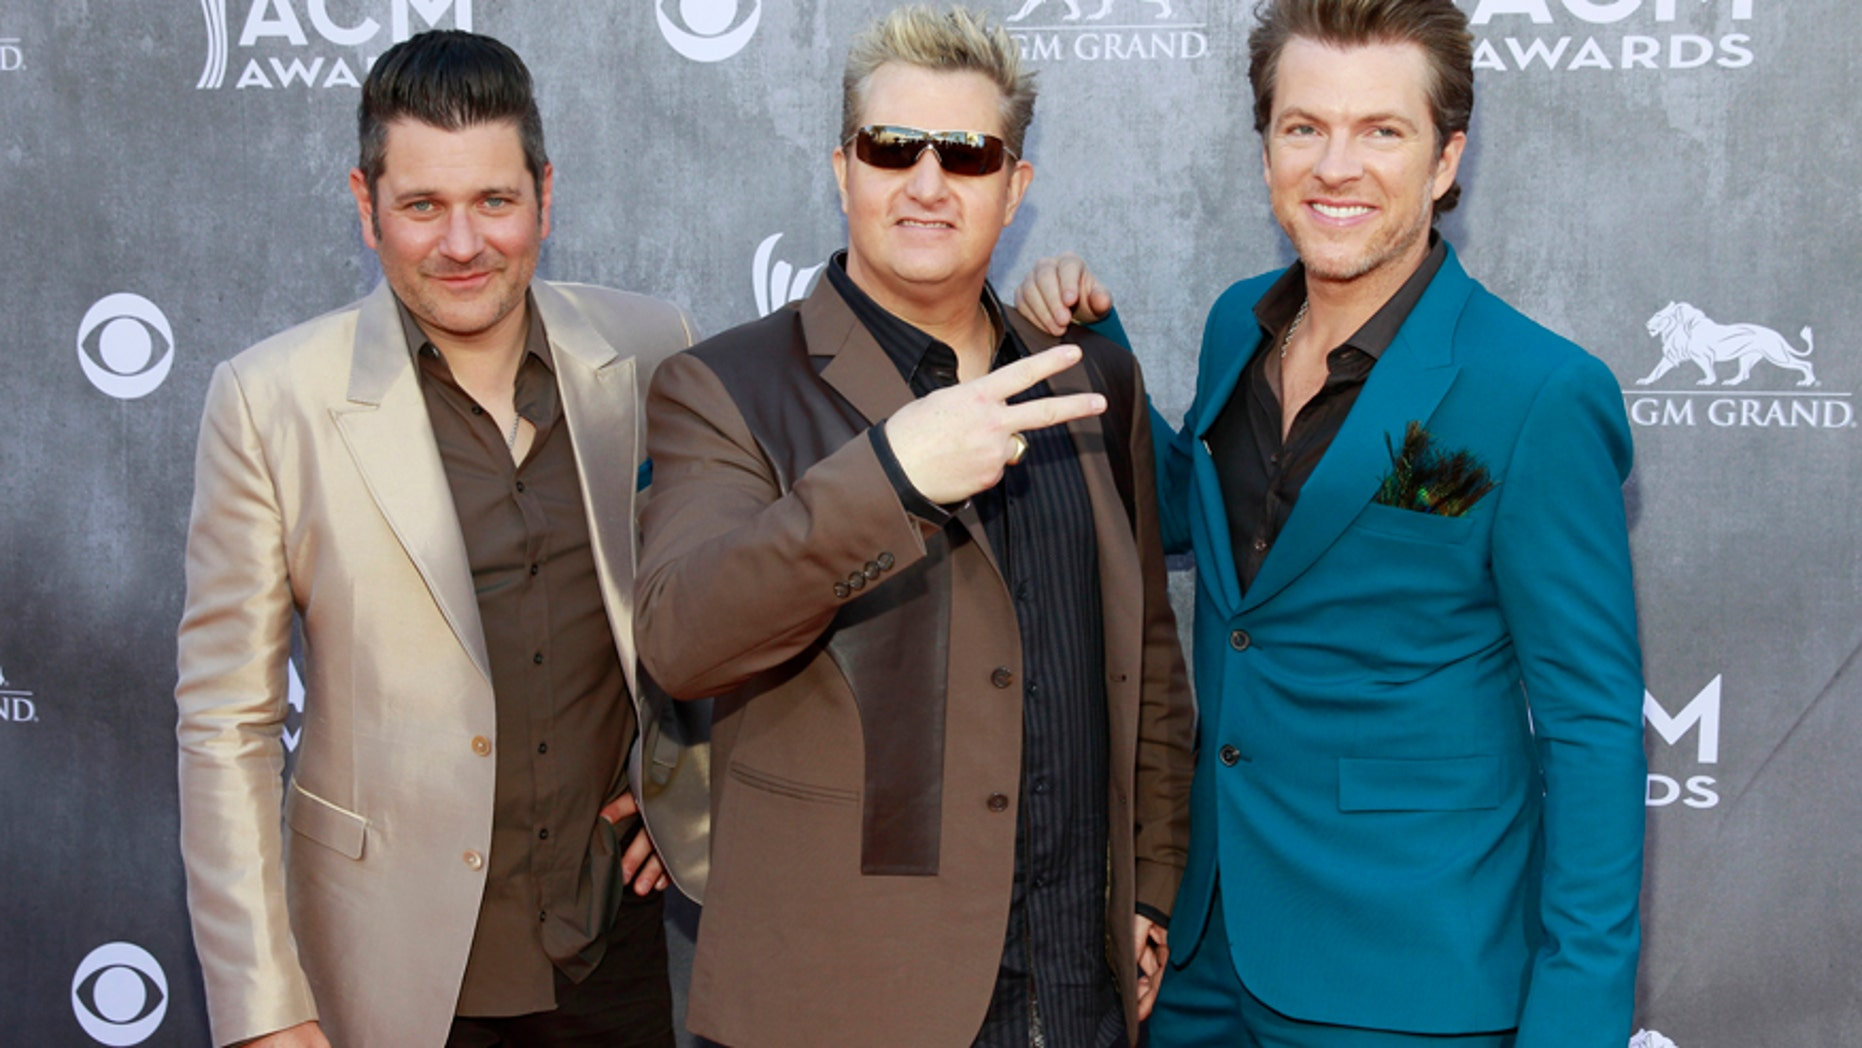 (L-R) Jay DeMarcus, Gary LeVox and Joe Don Rooney of the group Rascal Flatts brought in a cool $27 million this year.